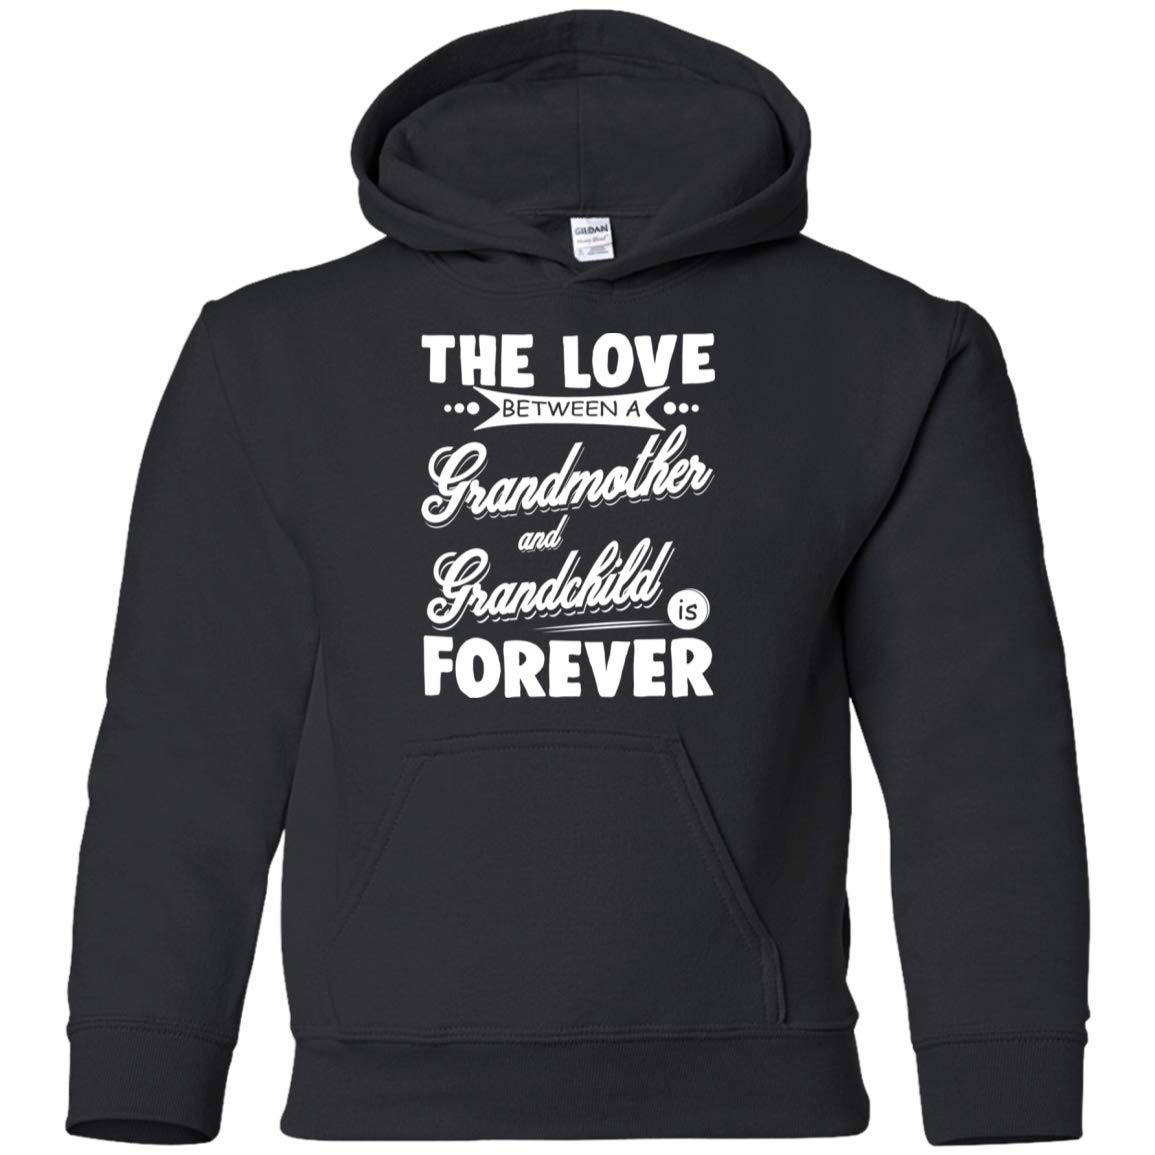 G185B Gildan Youth Pullover Hoodie Teely Shop Little Girls The Love Between A Grandmother And Grandchild Is Forever